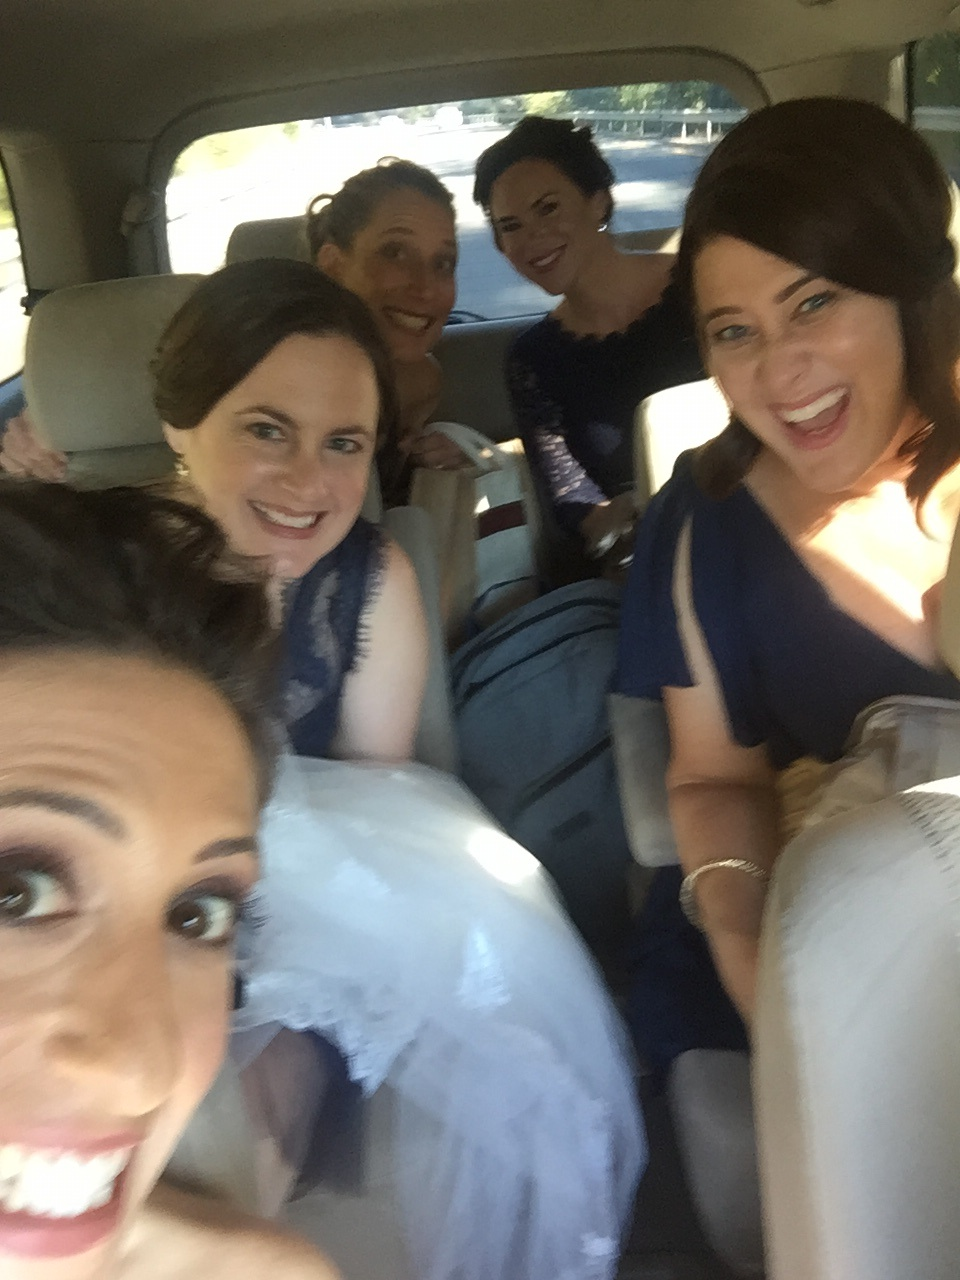 Bridal Uber ride, both efficient and classy.